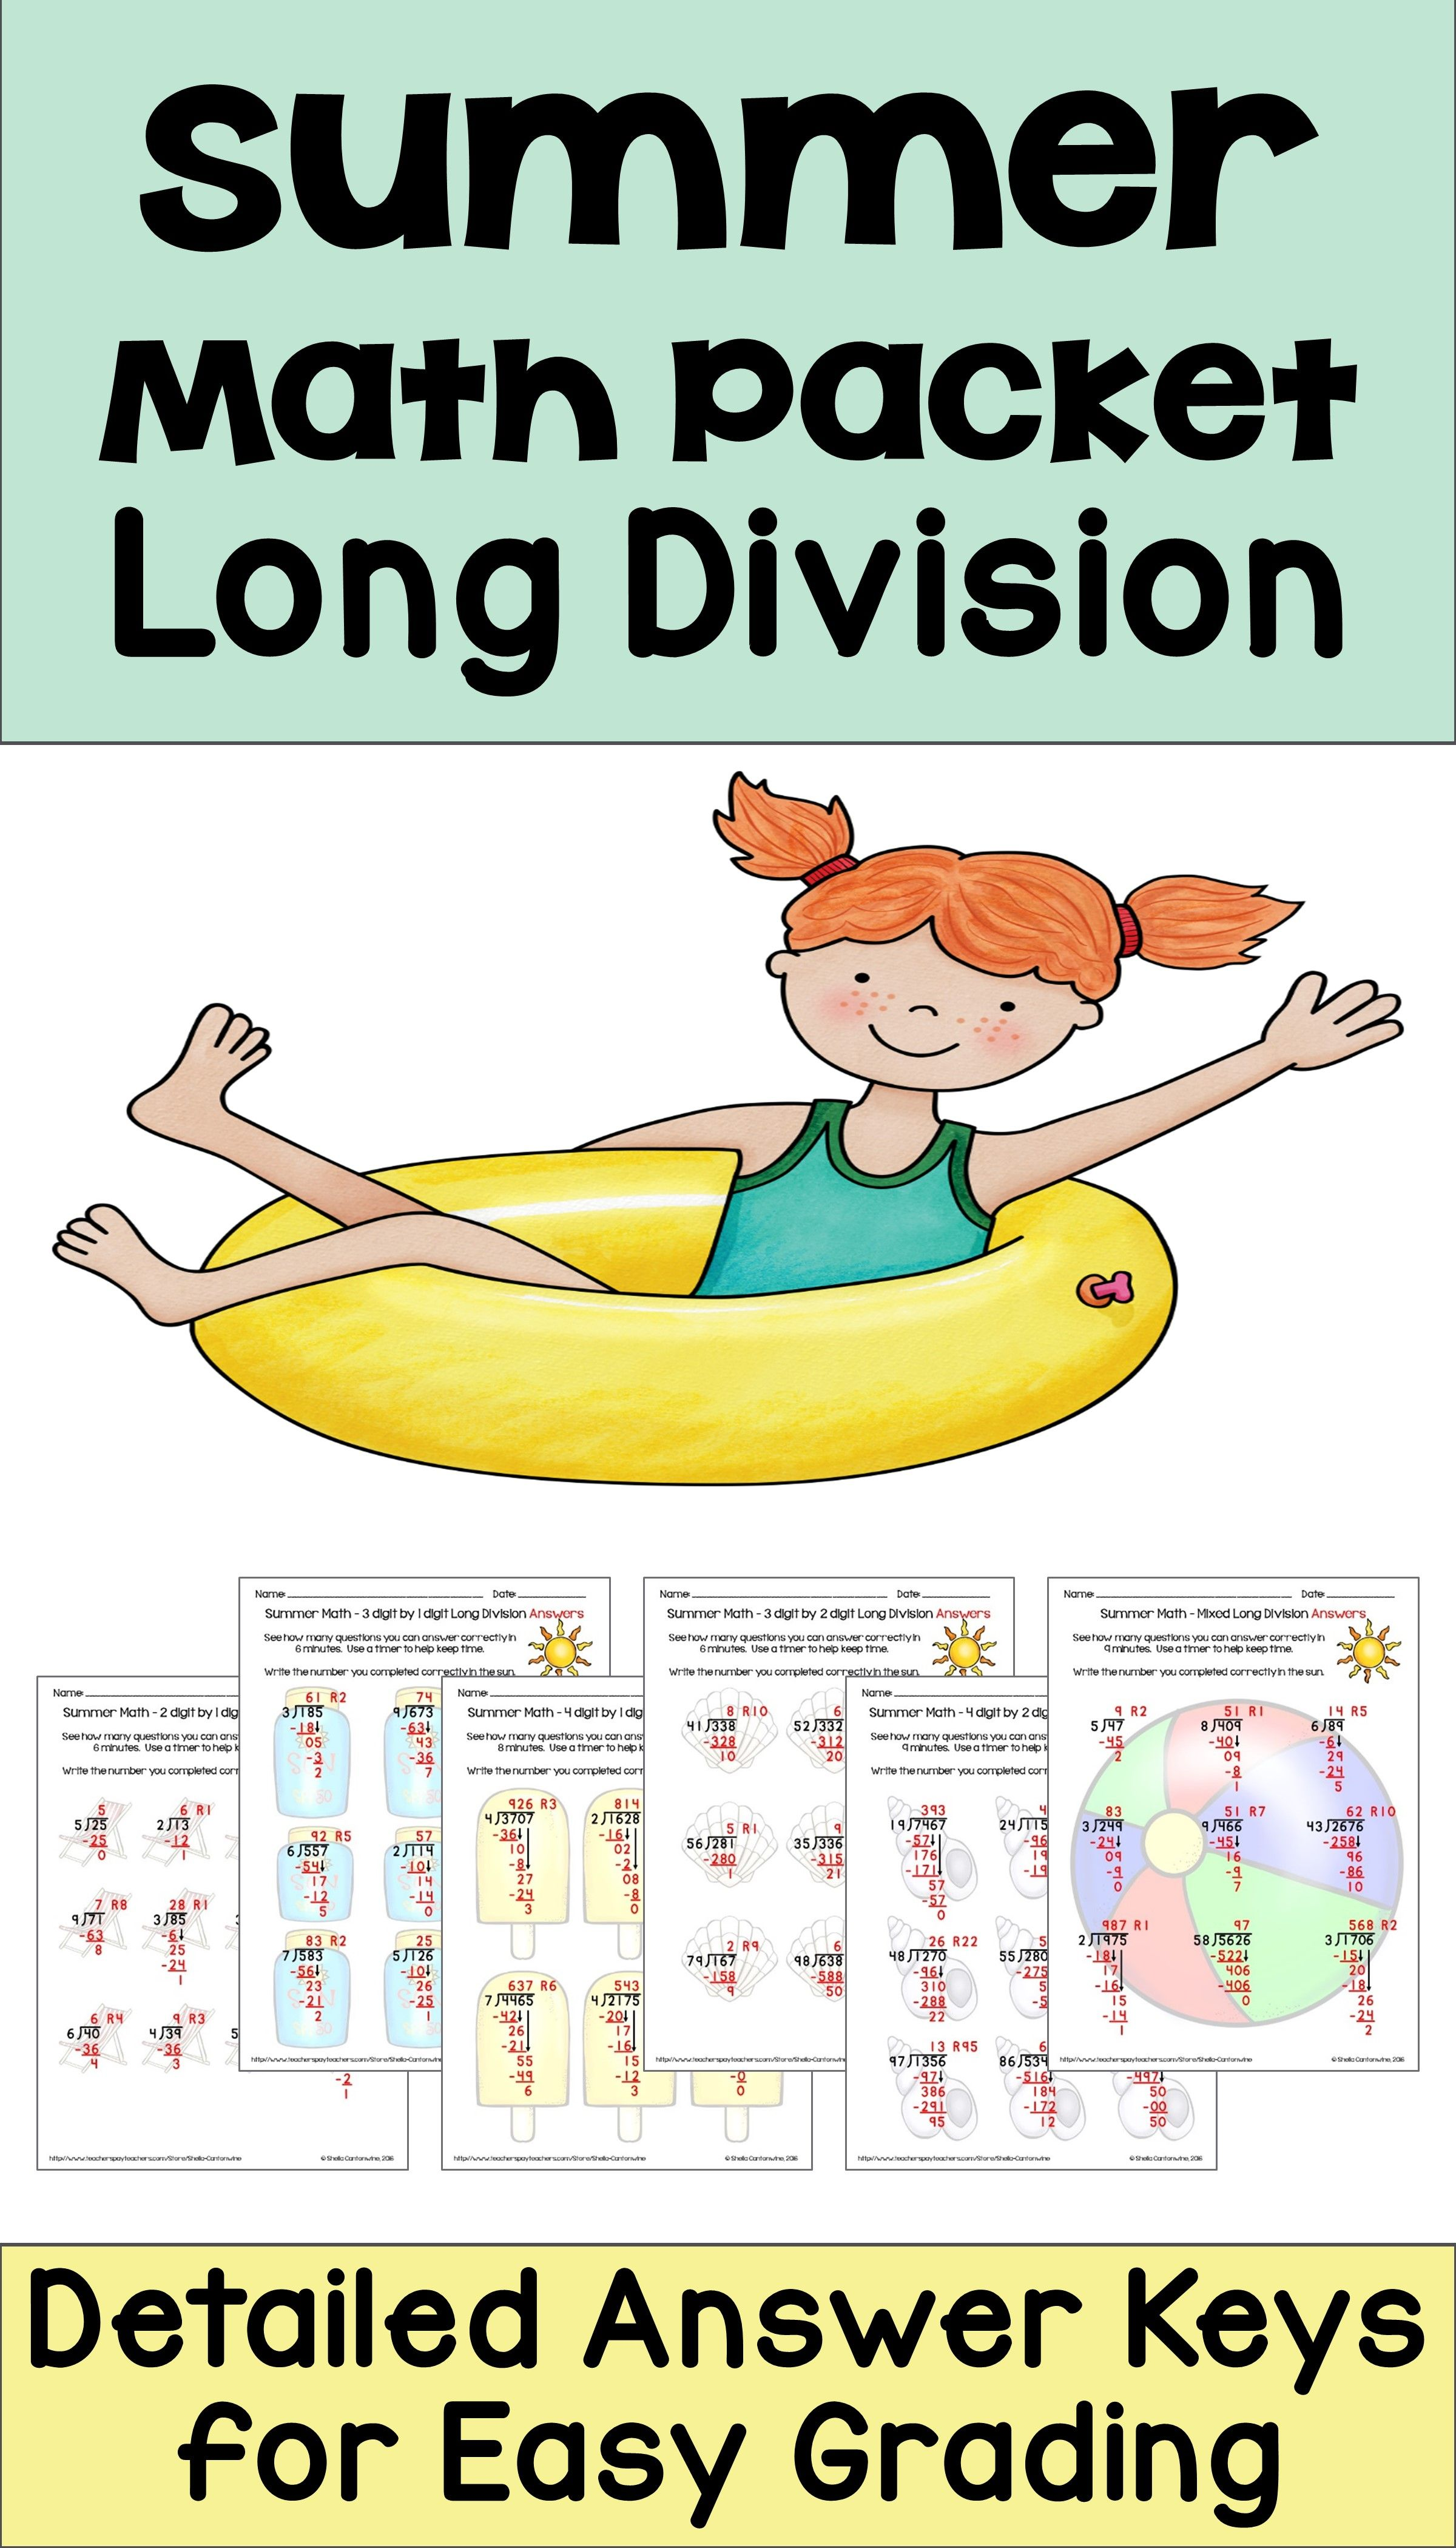 Worksheets Fun Long Division Worksheets summer math packet long division worksheets this features practice for 3rd 4th or 5th graders